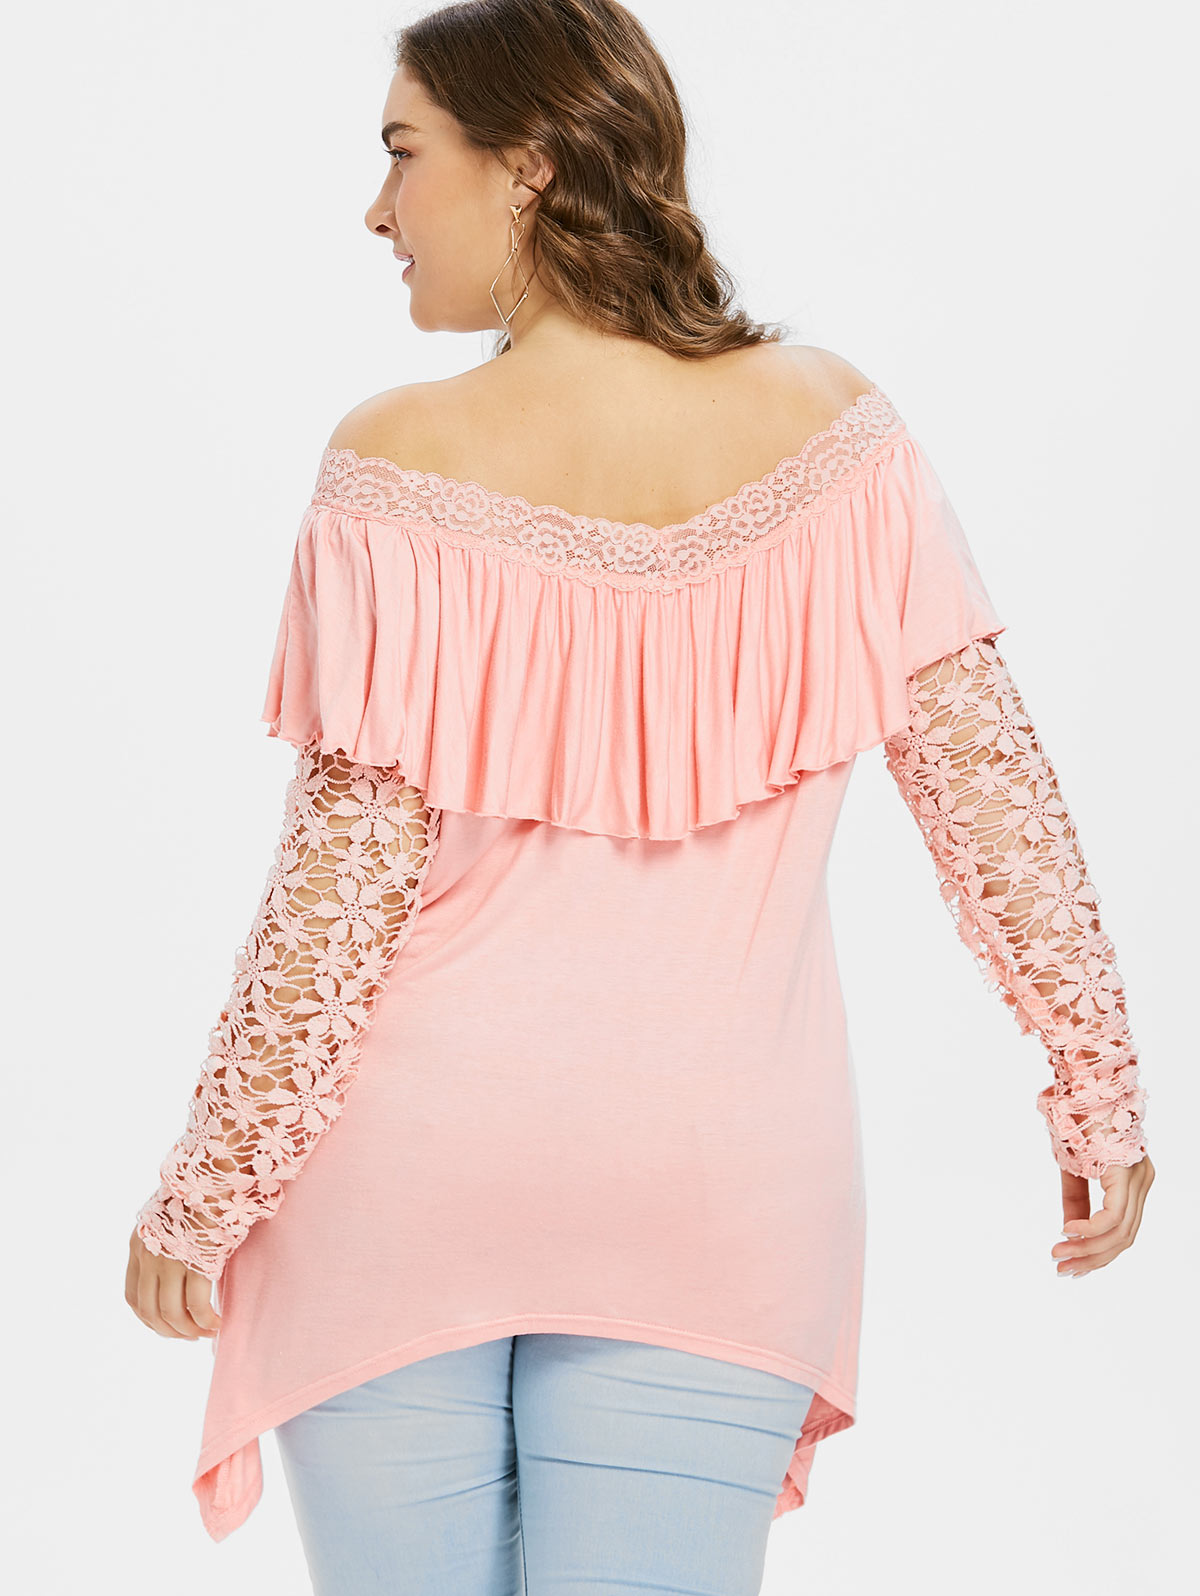 AZULINA Plus Size Lace Sleeve Ruffle Top Women T-Shirt Summer Autumn Off The Shoulder Long Sleeve T Shirt 2018 Ladies Tops 5XL